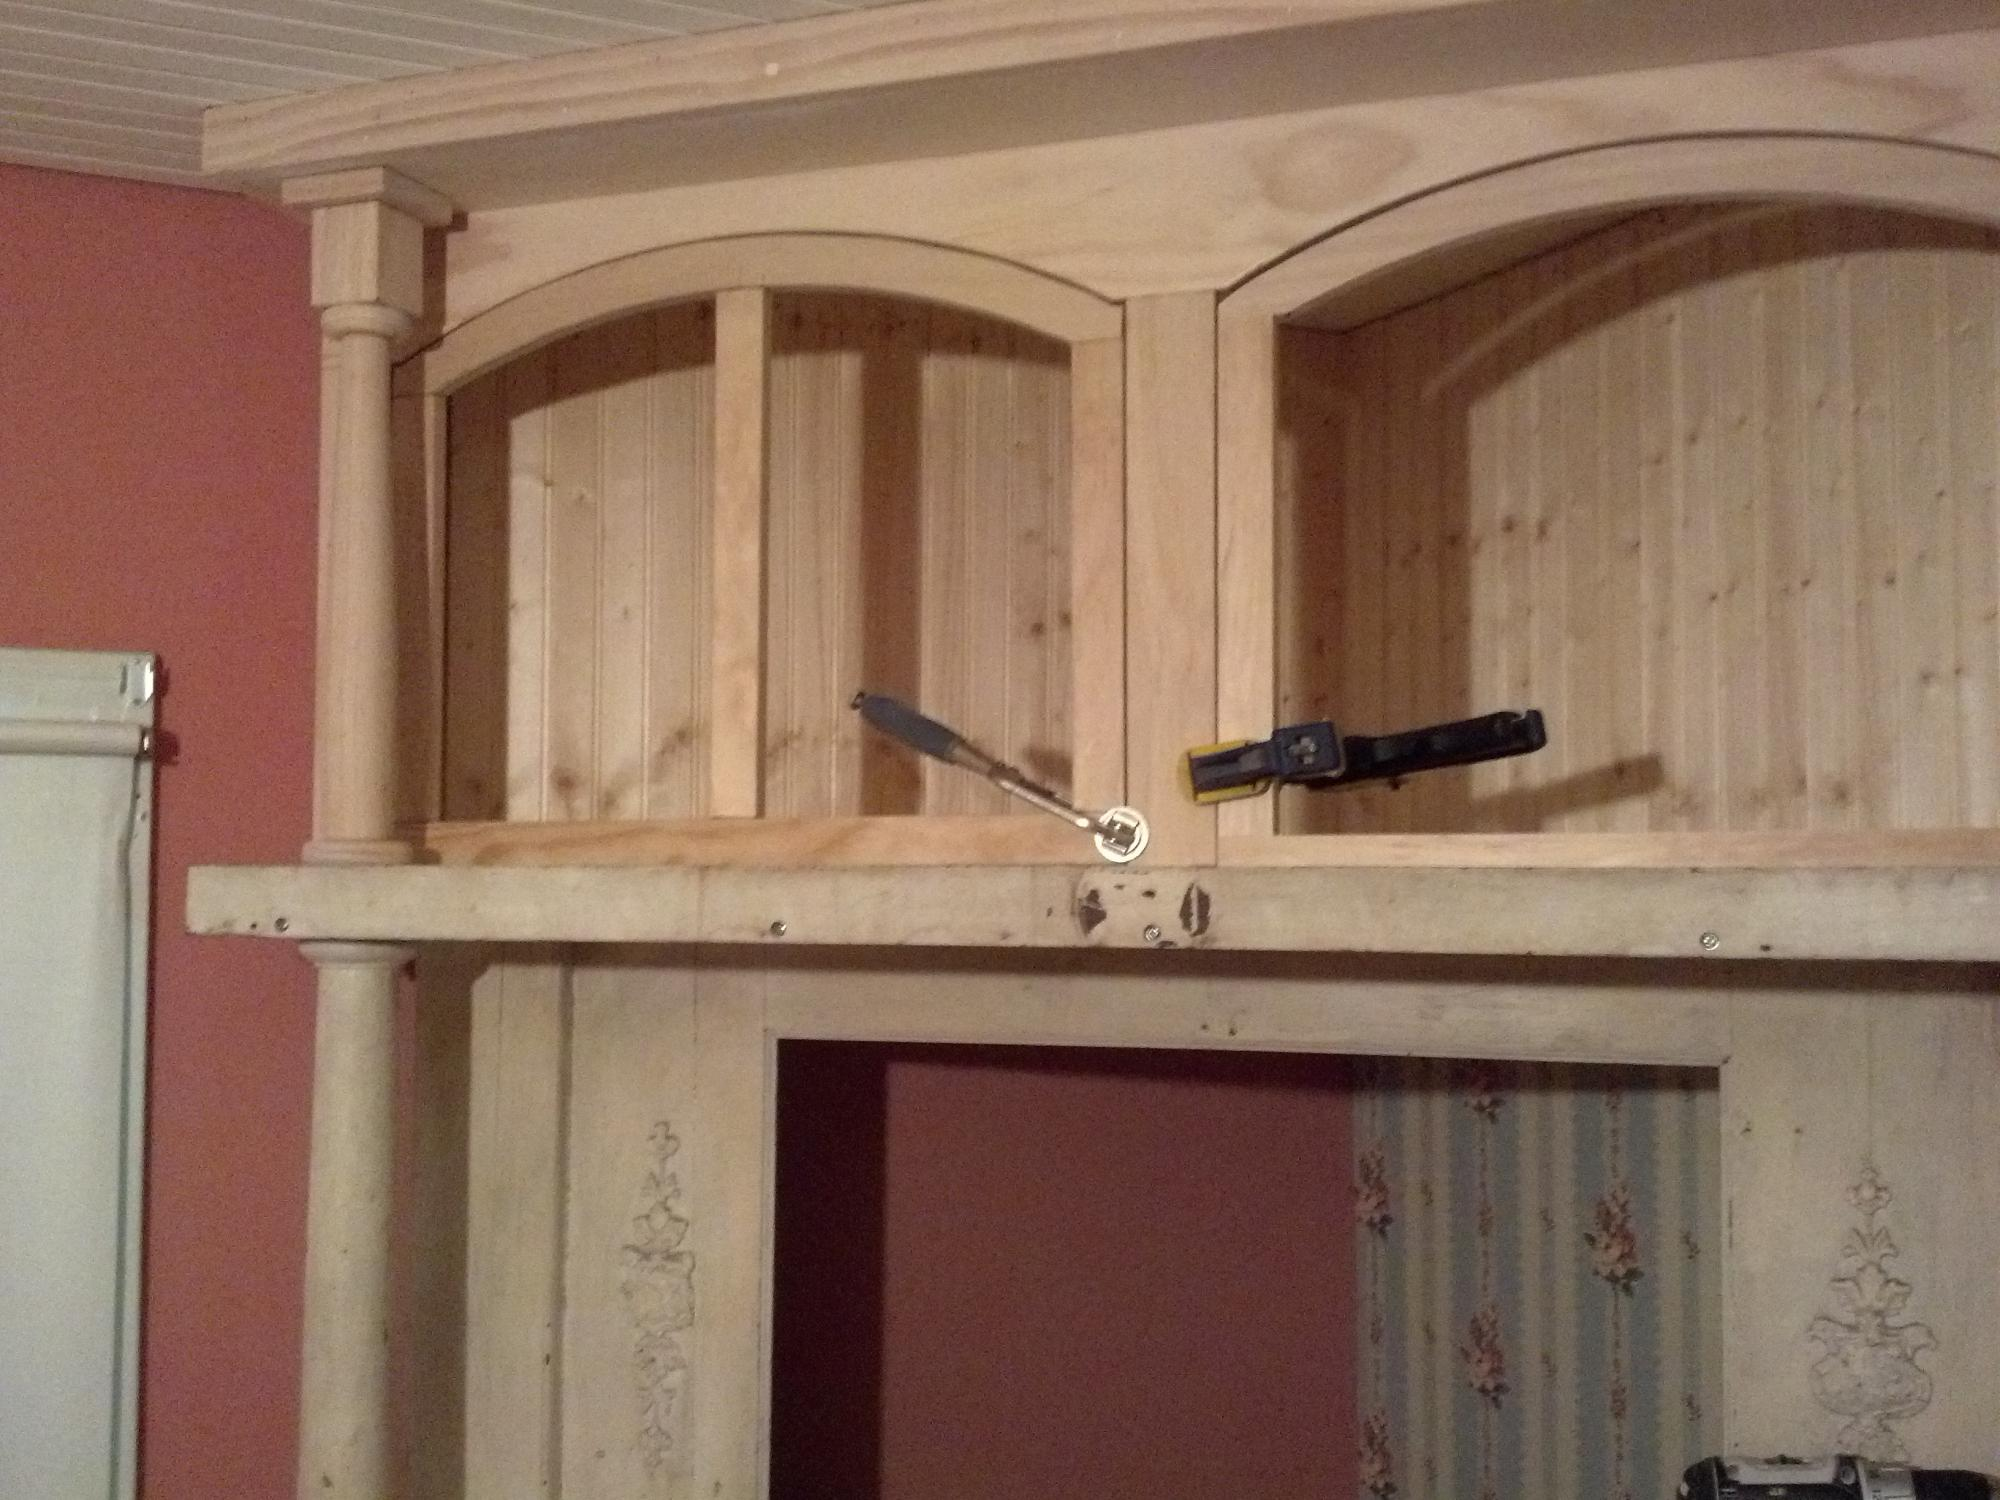 Routing Arch Top Cabinet Doors - Router Forums